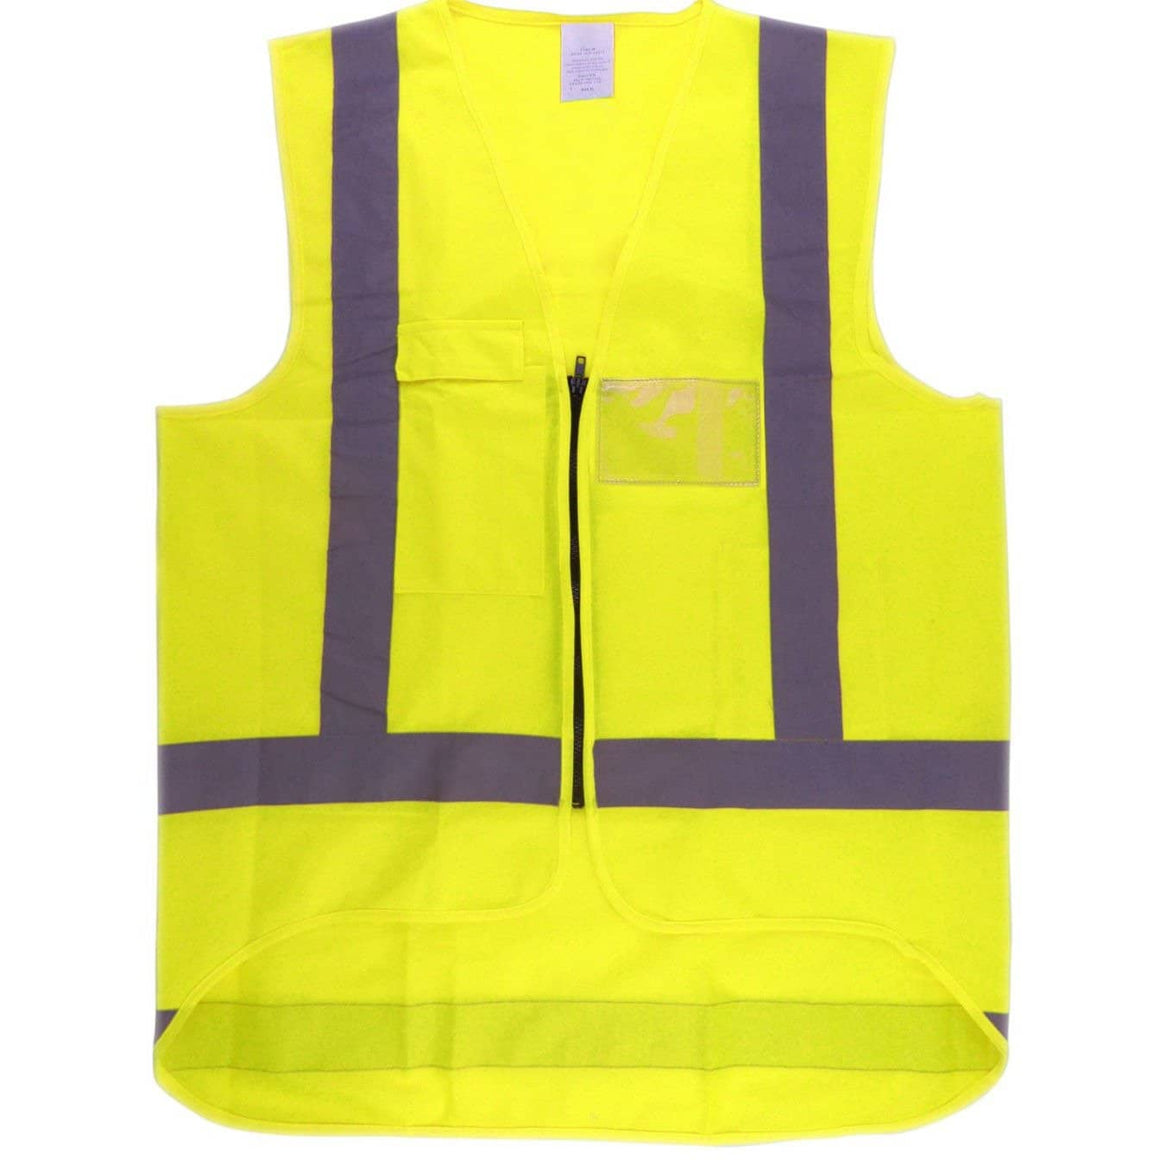 Ironwear Hi Vis Day/Night Safety Vest - Yellow